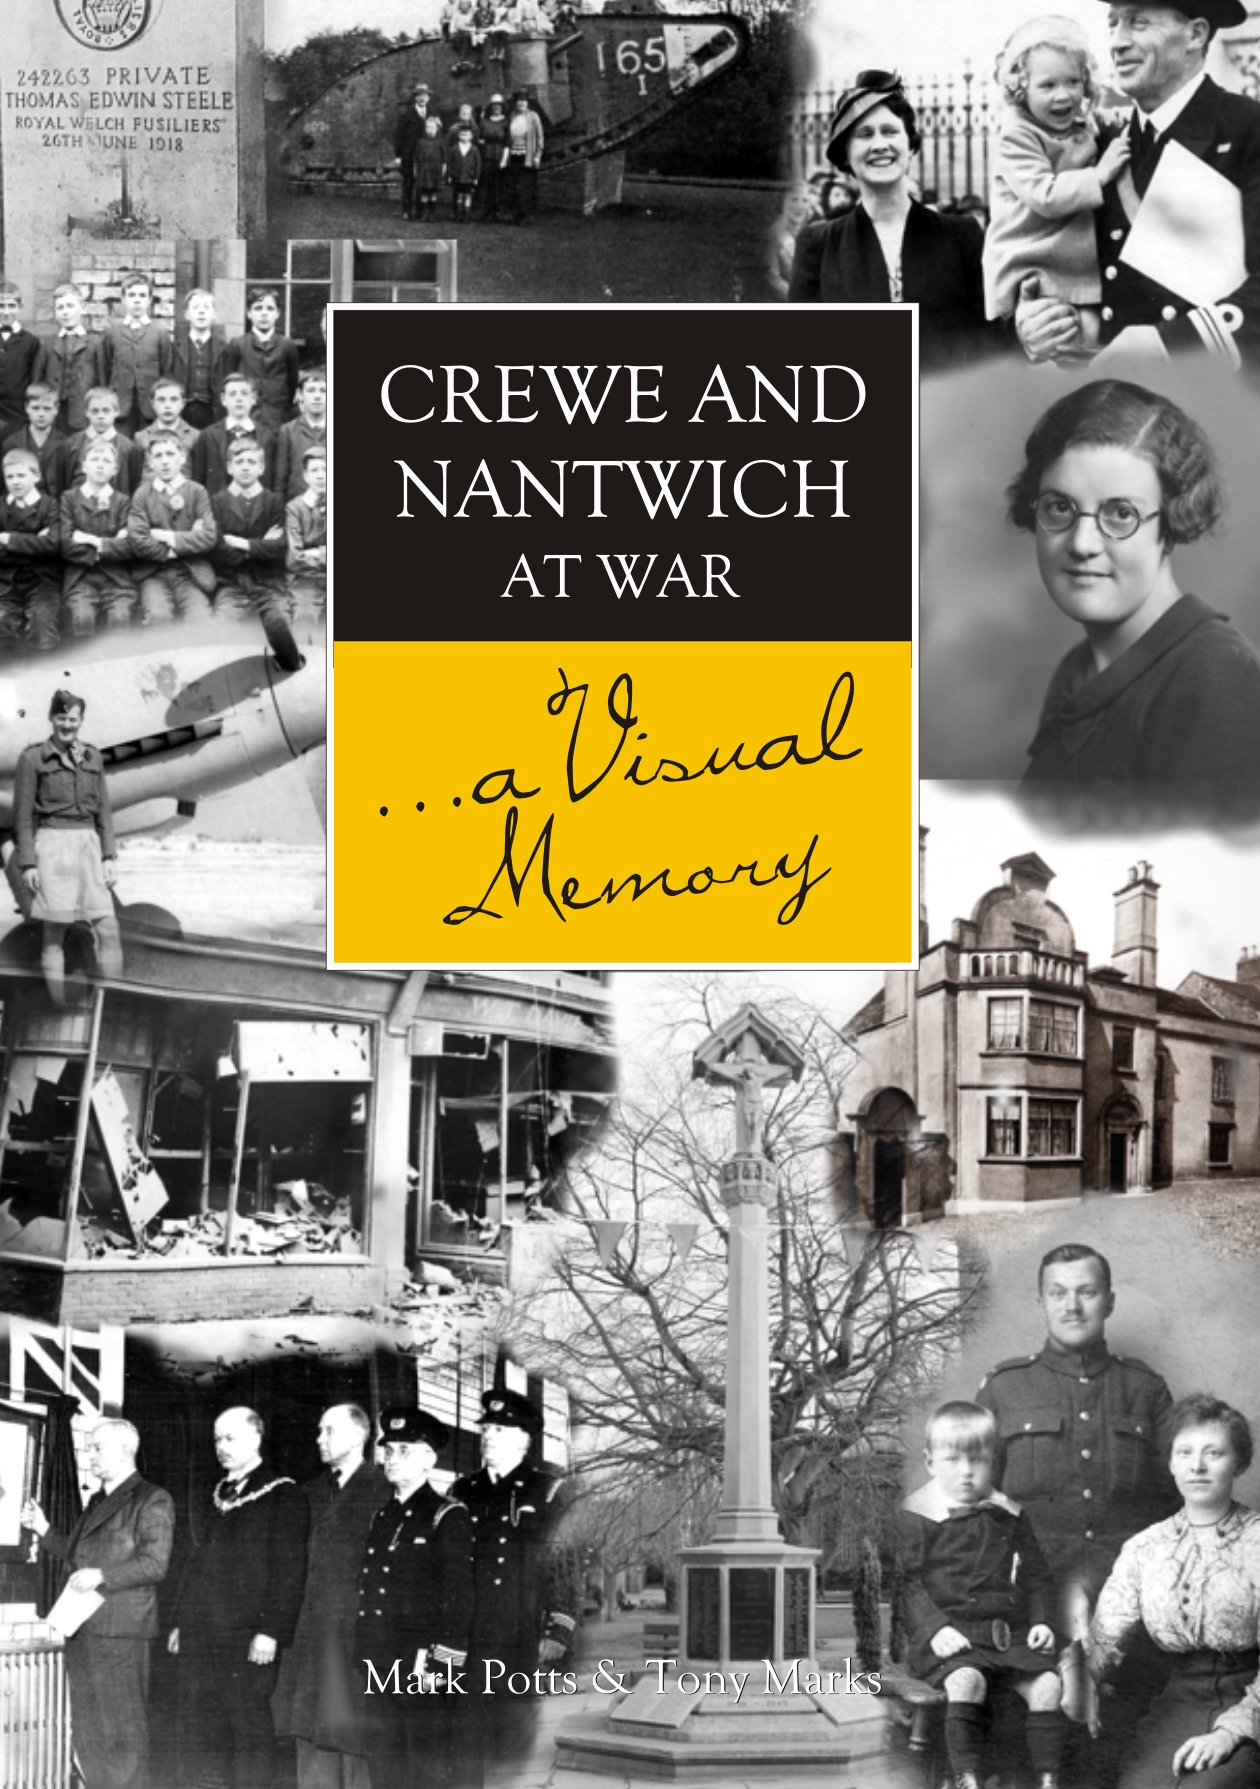 Crewe and Nantwich at War